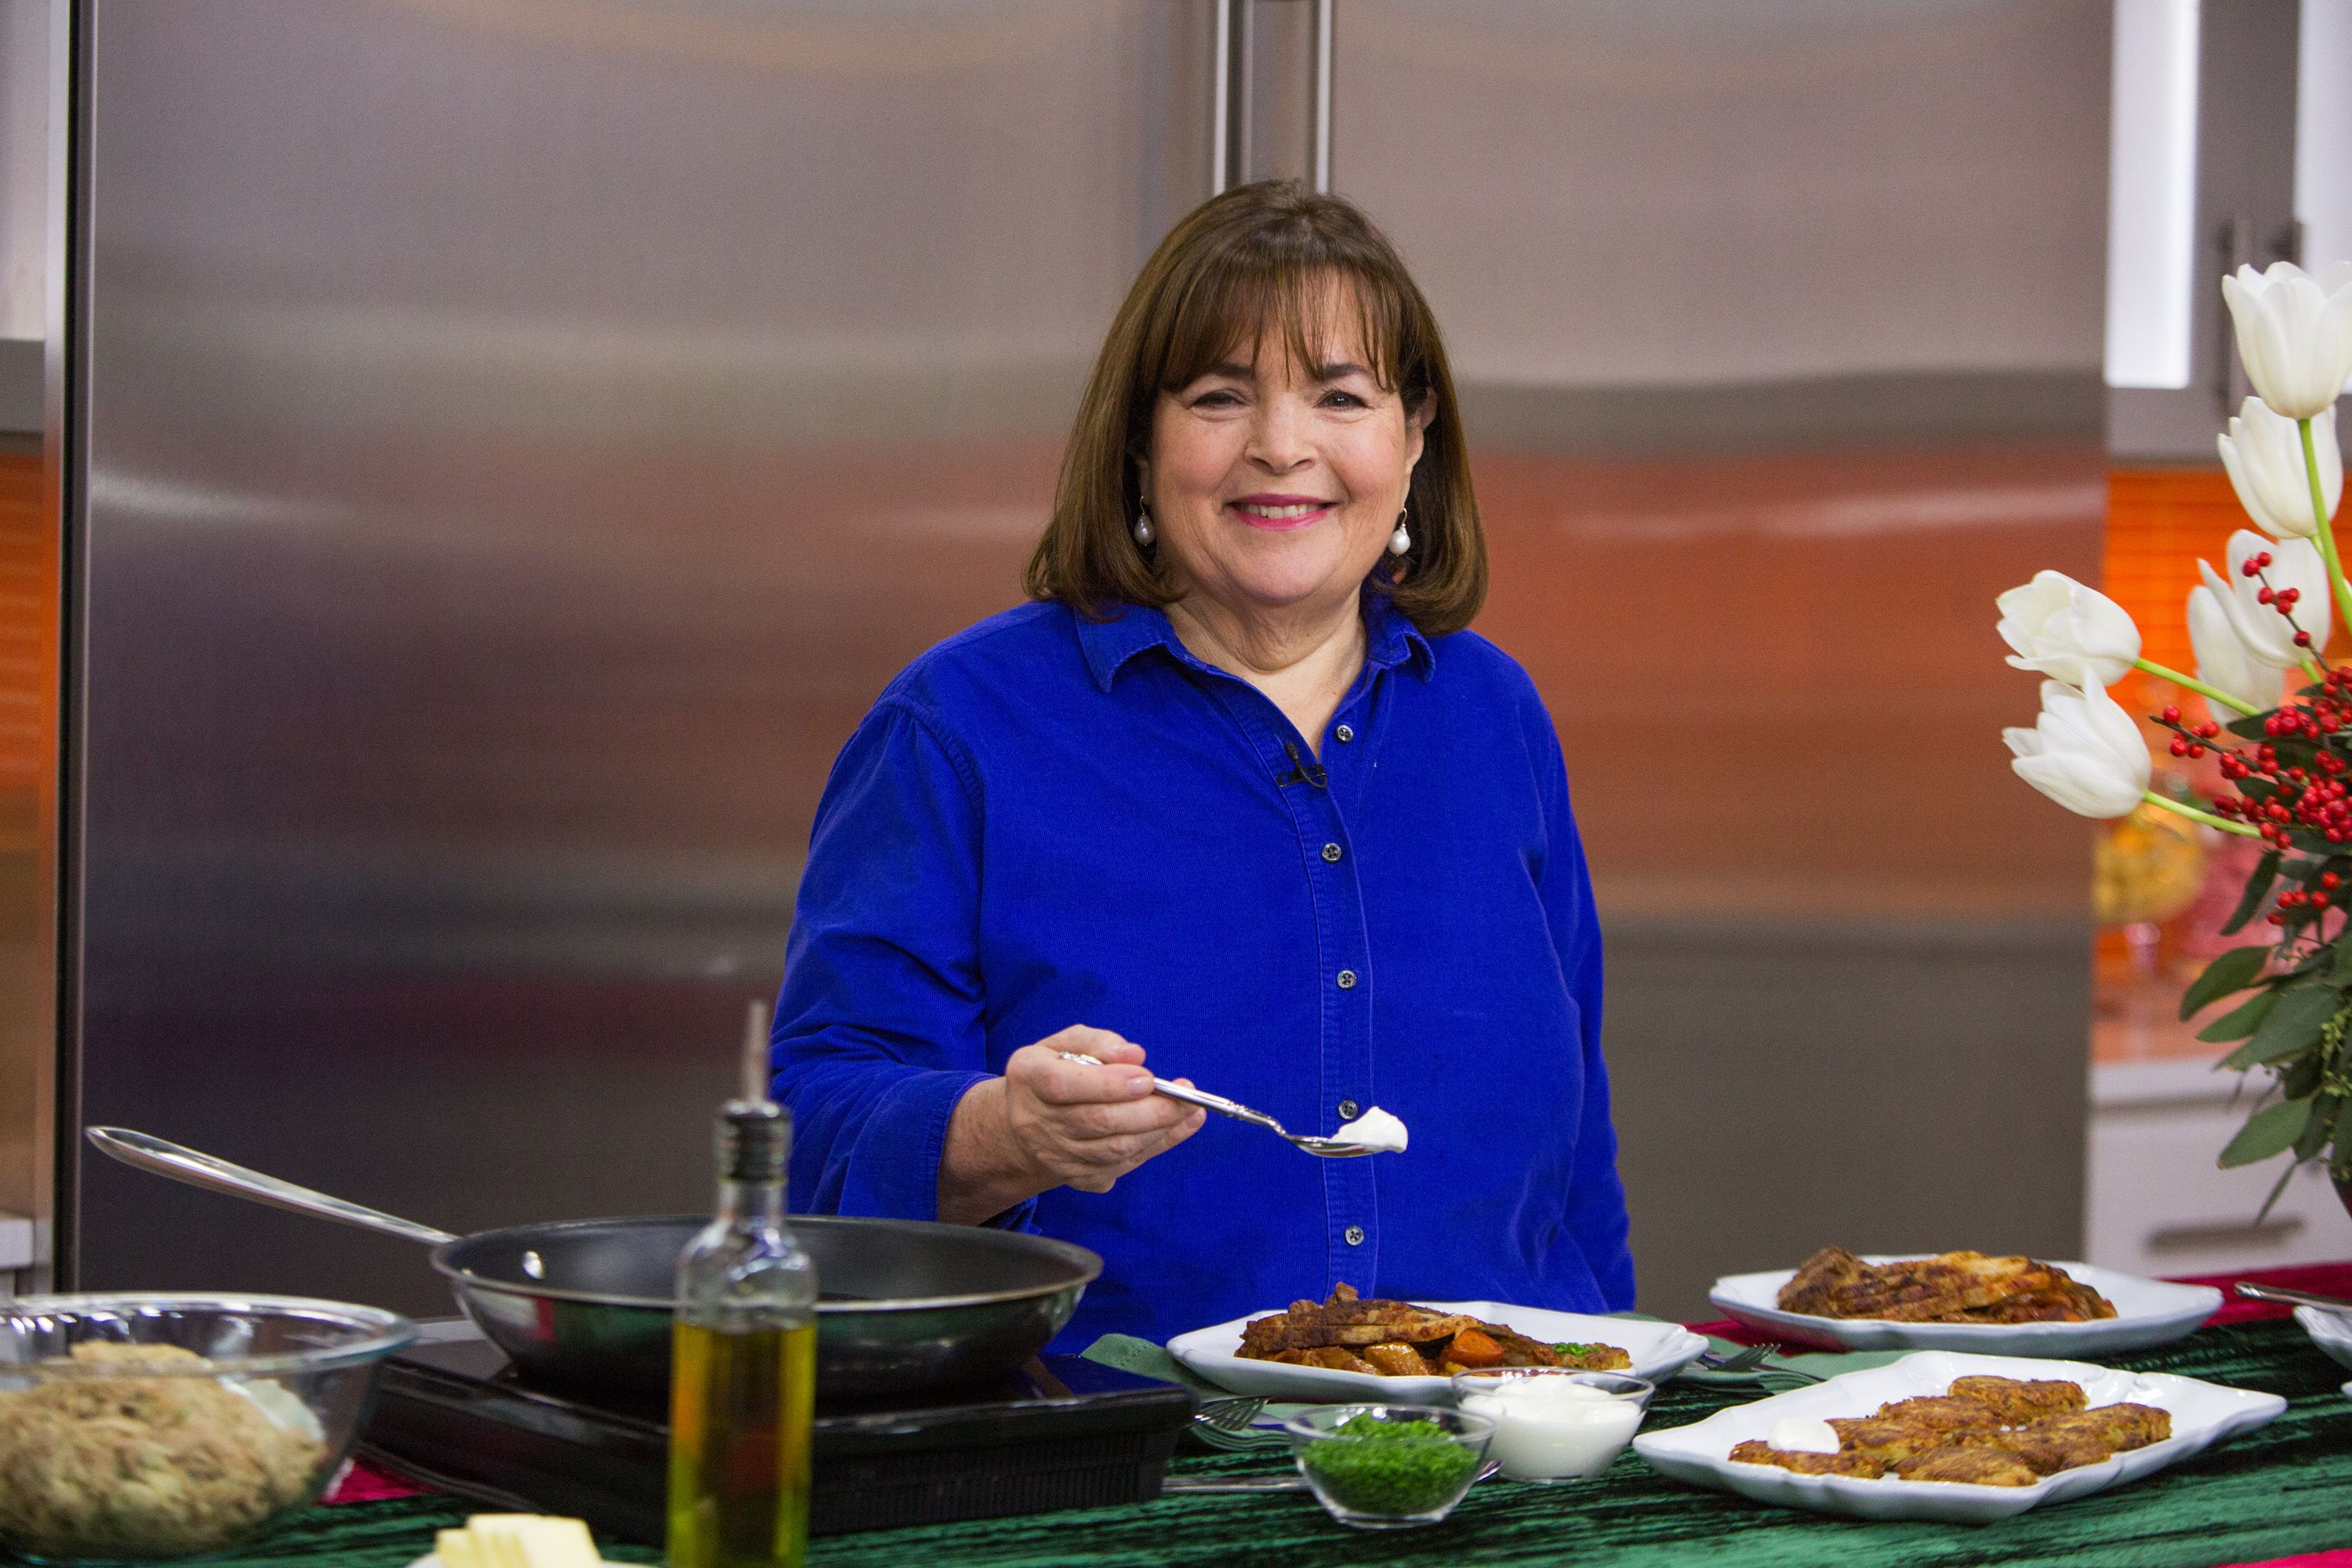 Ina Garten S Back On Tv With New Episodes Of Cook Like A Pro Delish